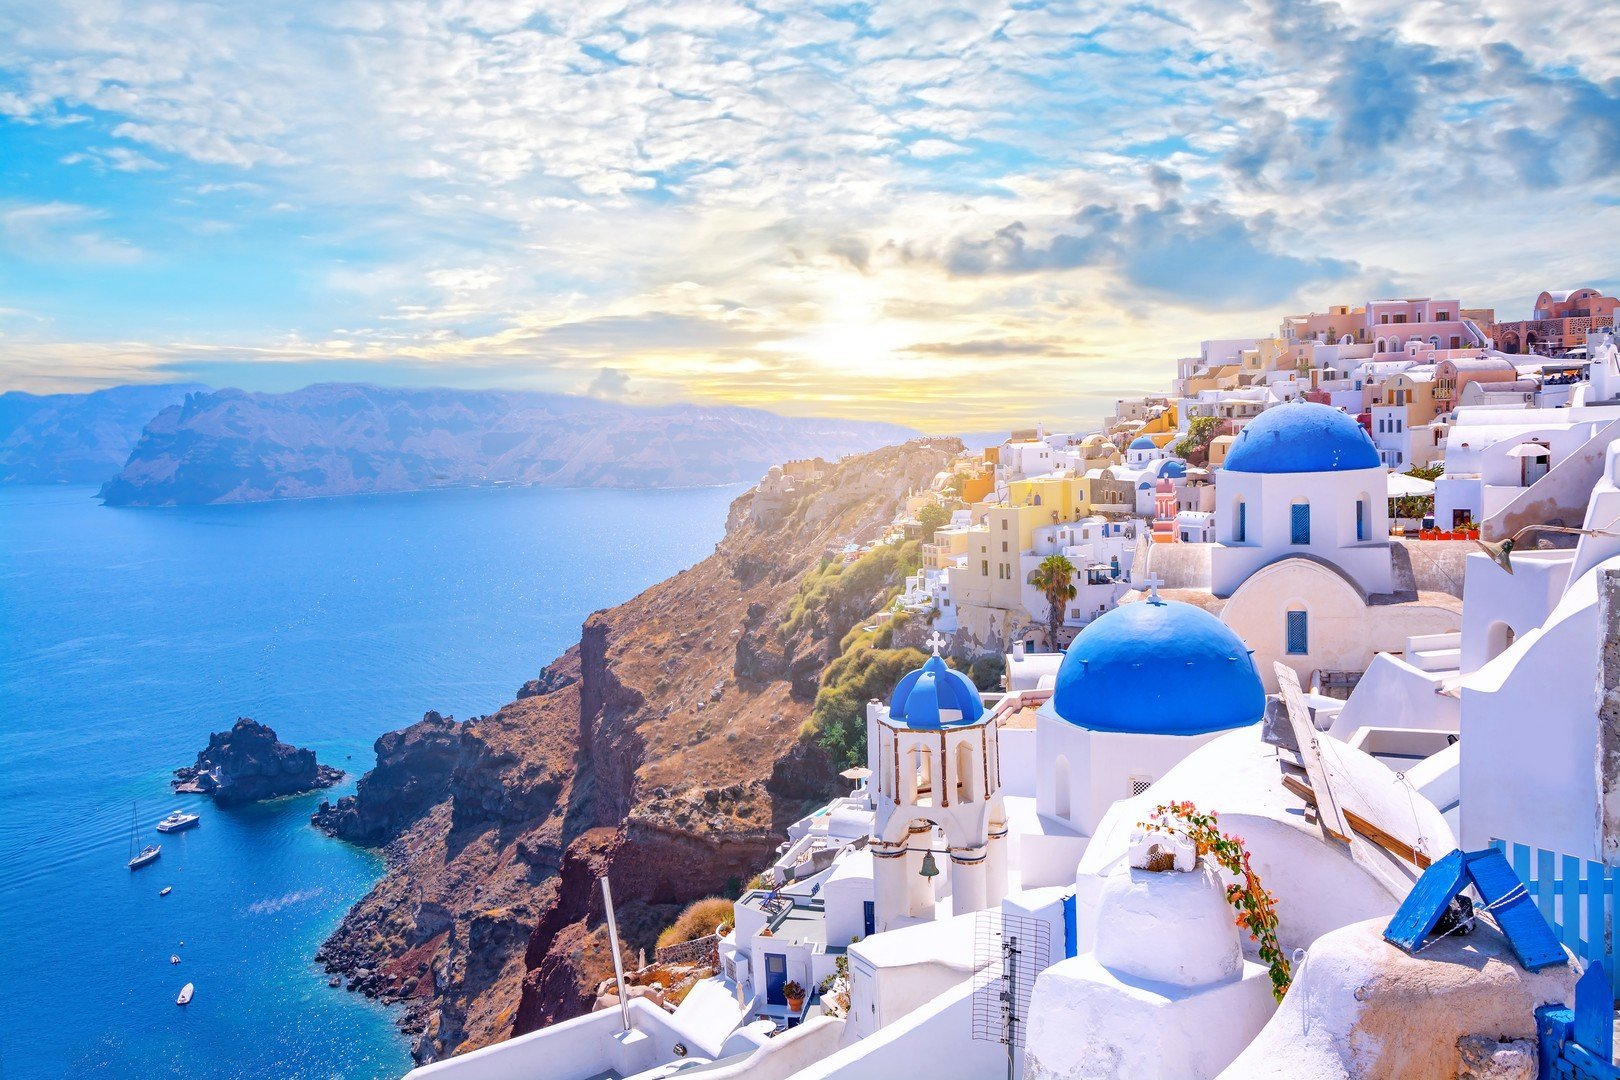 Beautiful Oia town on Santorini island, Greece. Traditional white architecture and greek orthodox churches with blue domes over the Caldera, Aegean sea shutterstock_1345474721